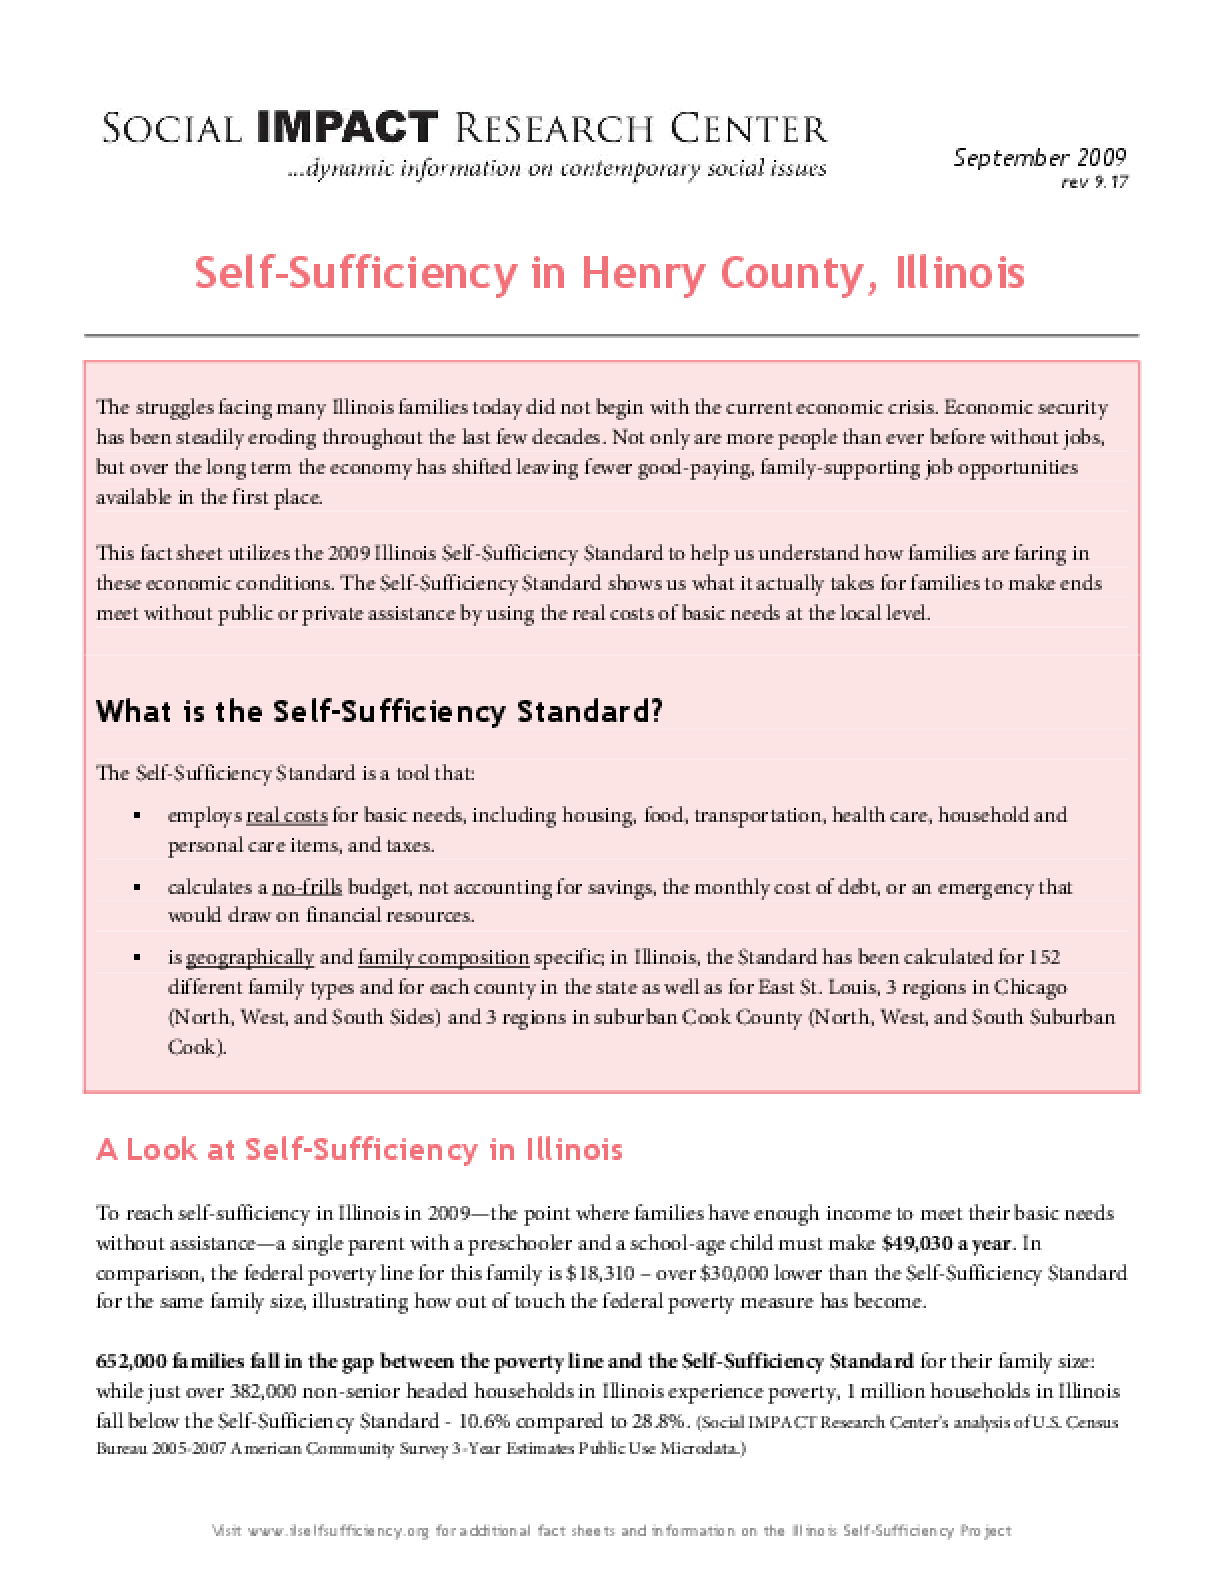 Self-Sufficiency in Henry County, Illinois